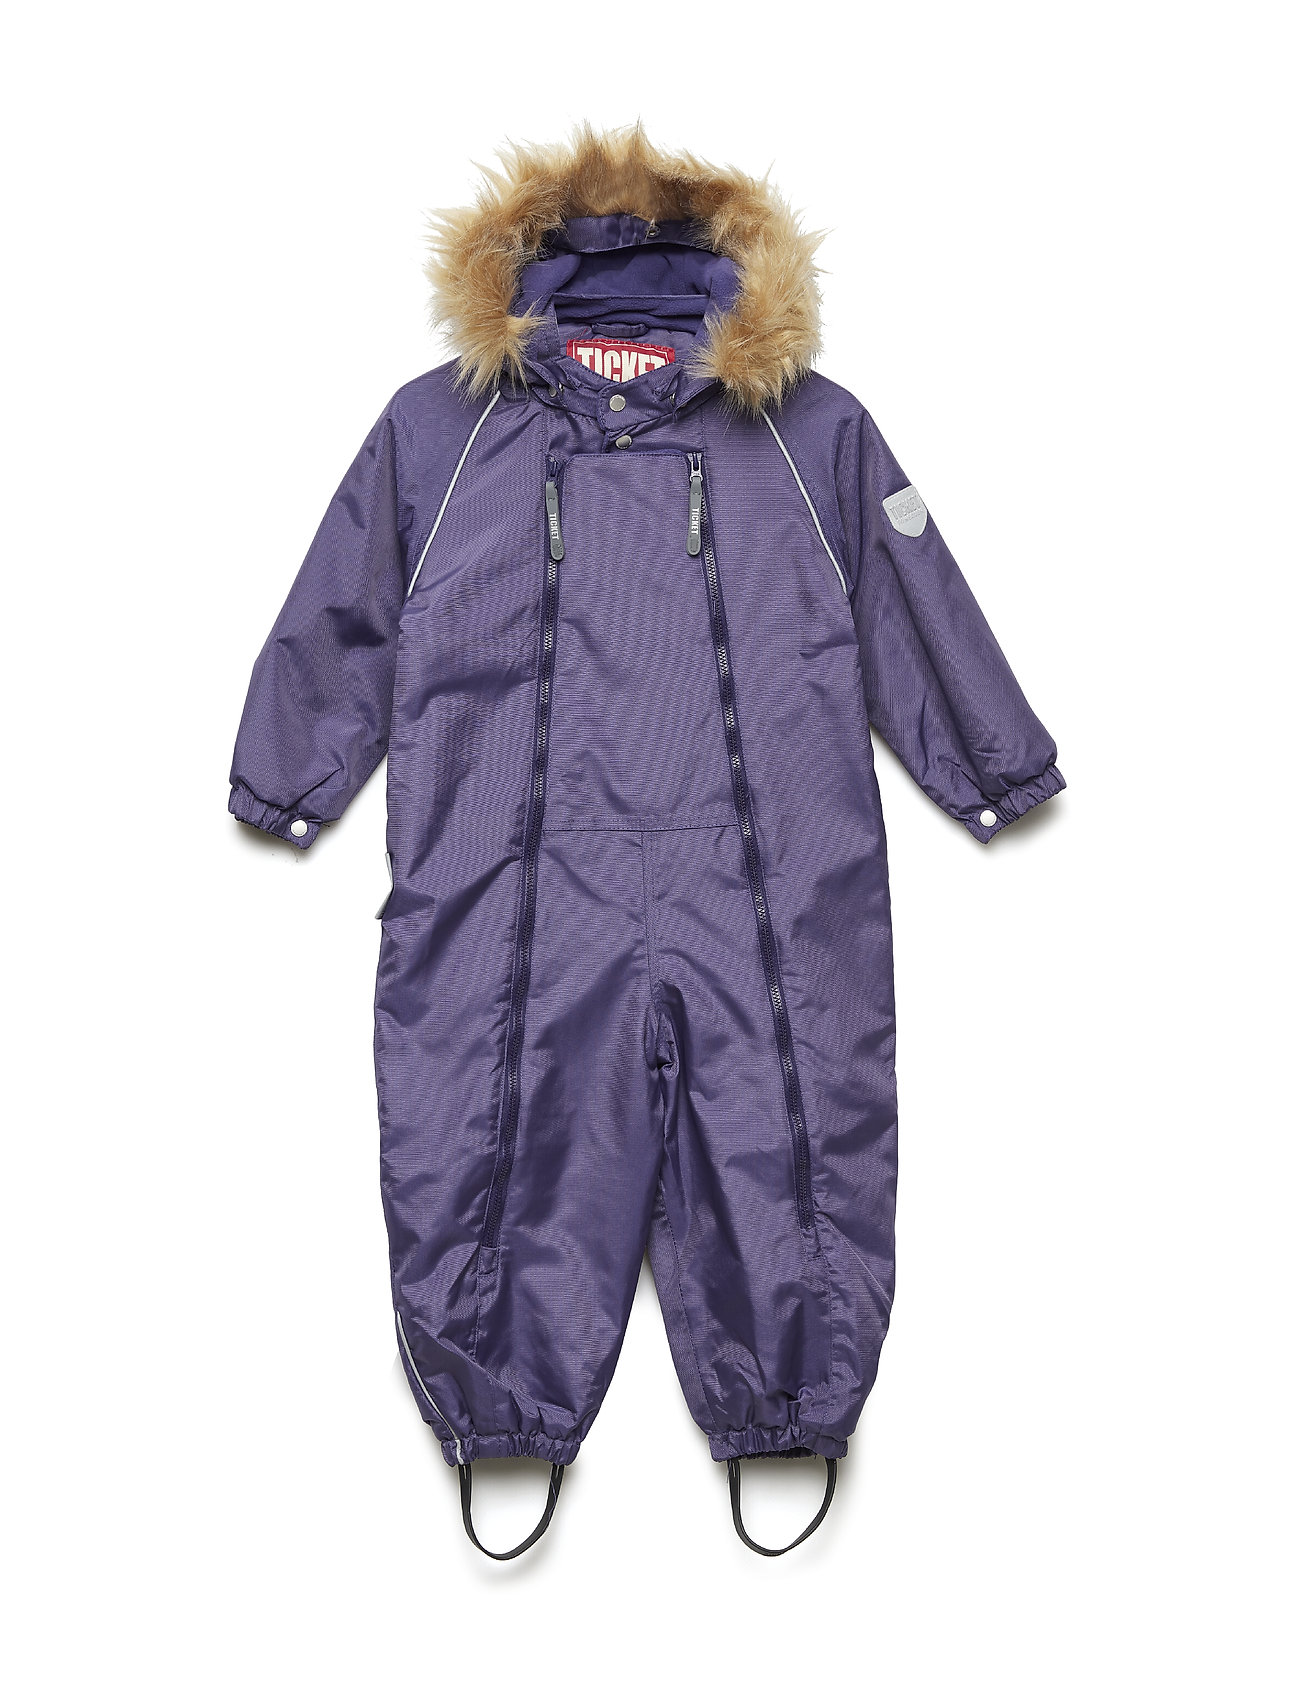 Ticket to Heaven Suit snowbaggie with detachable hood - DEEP WISTERIA